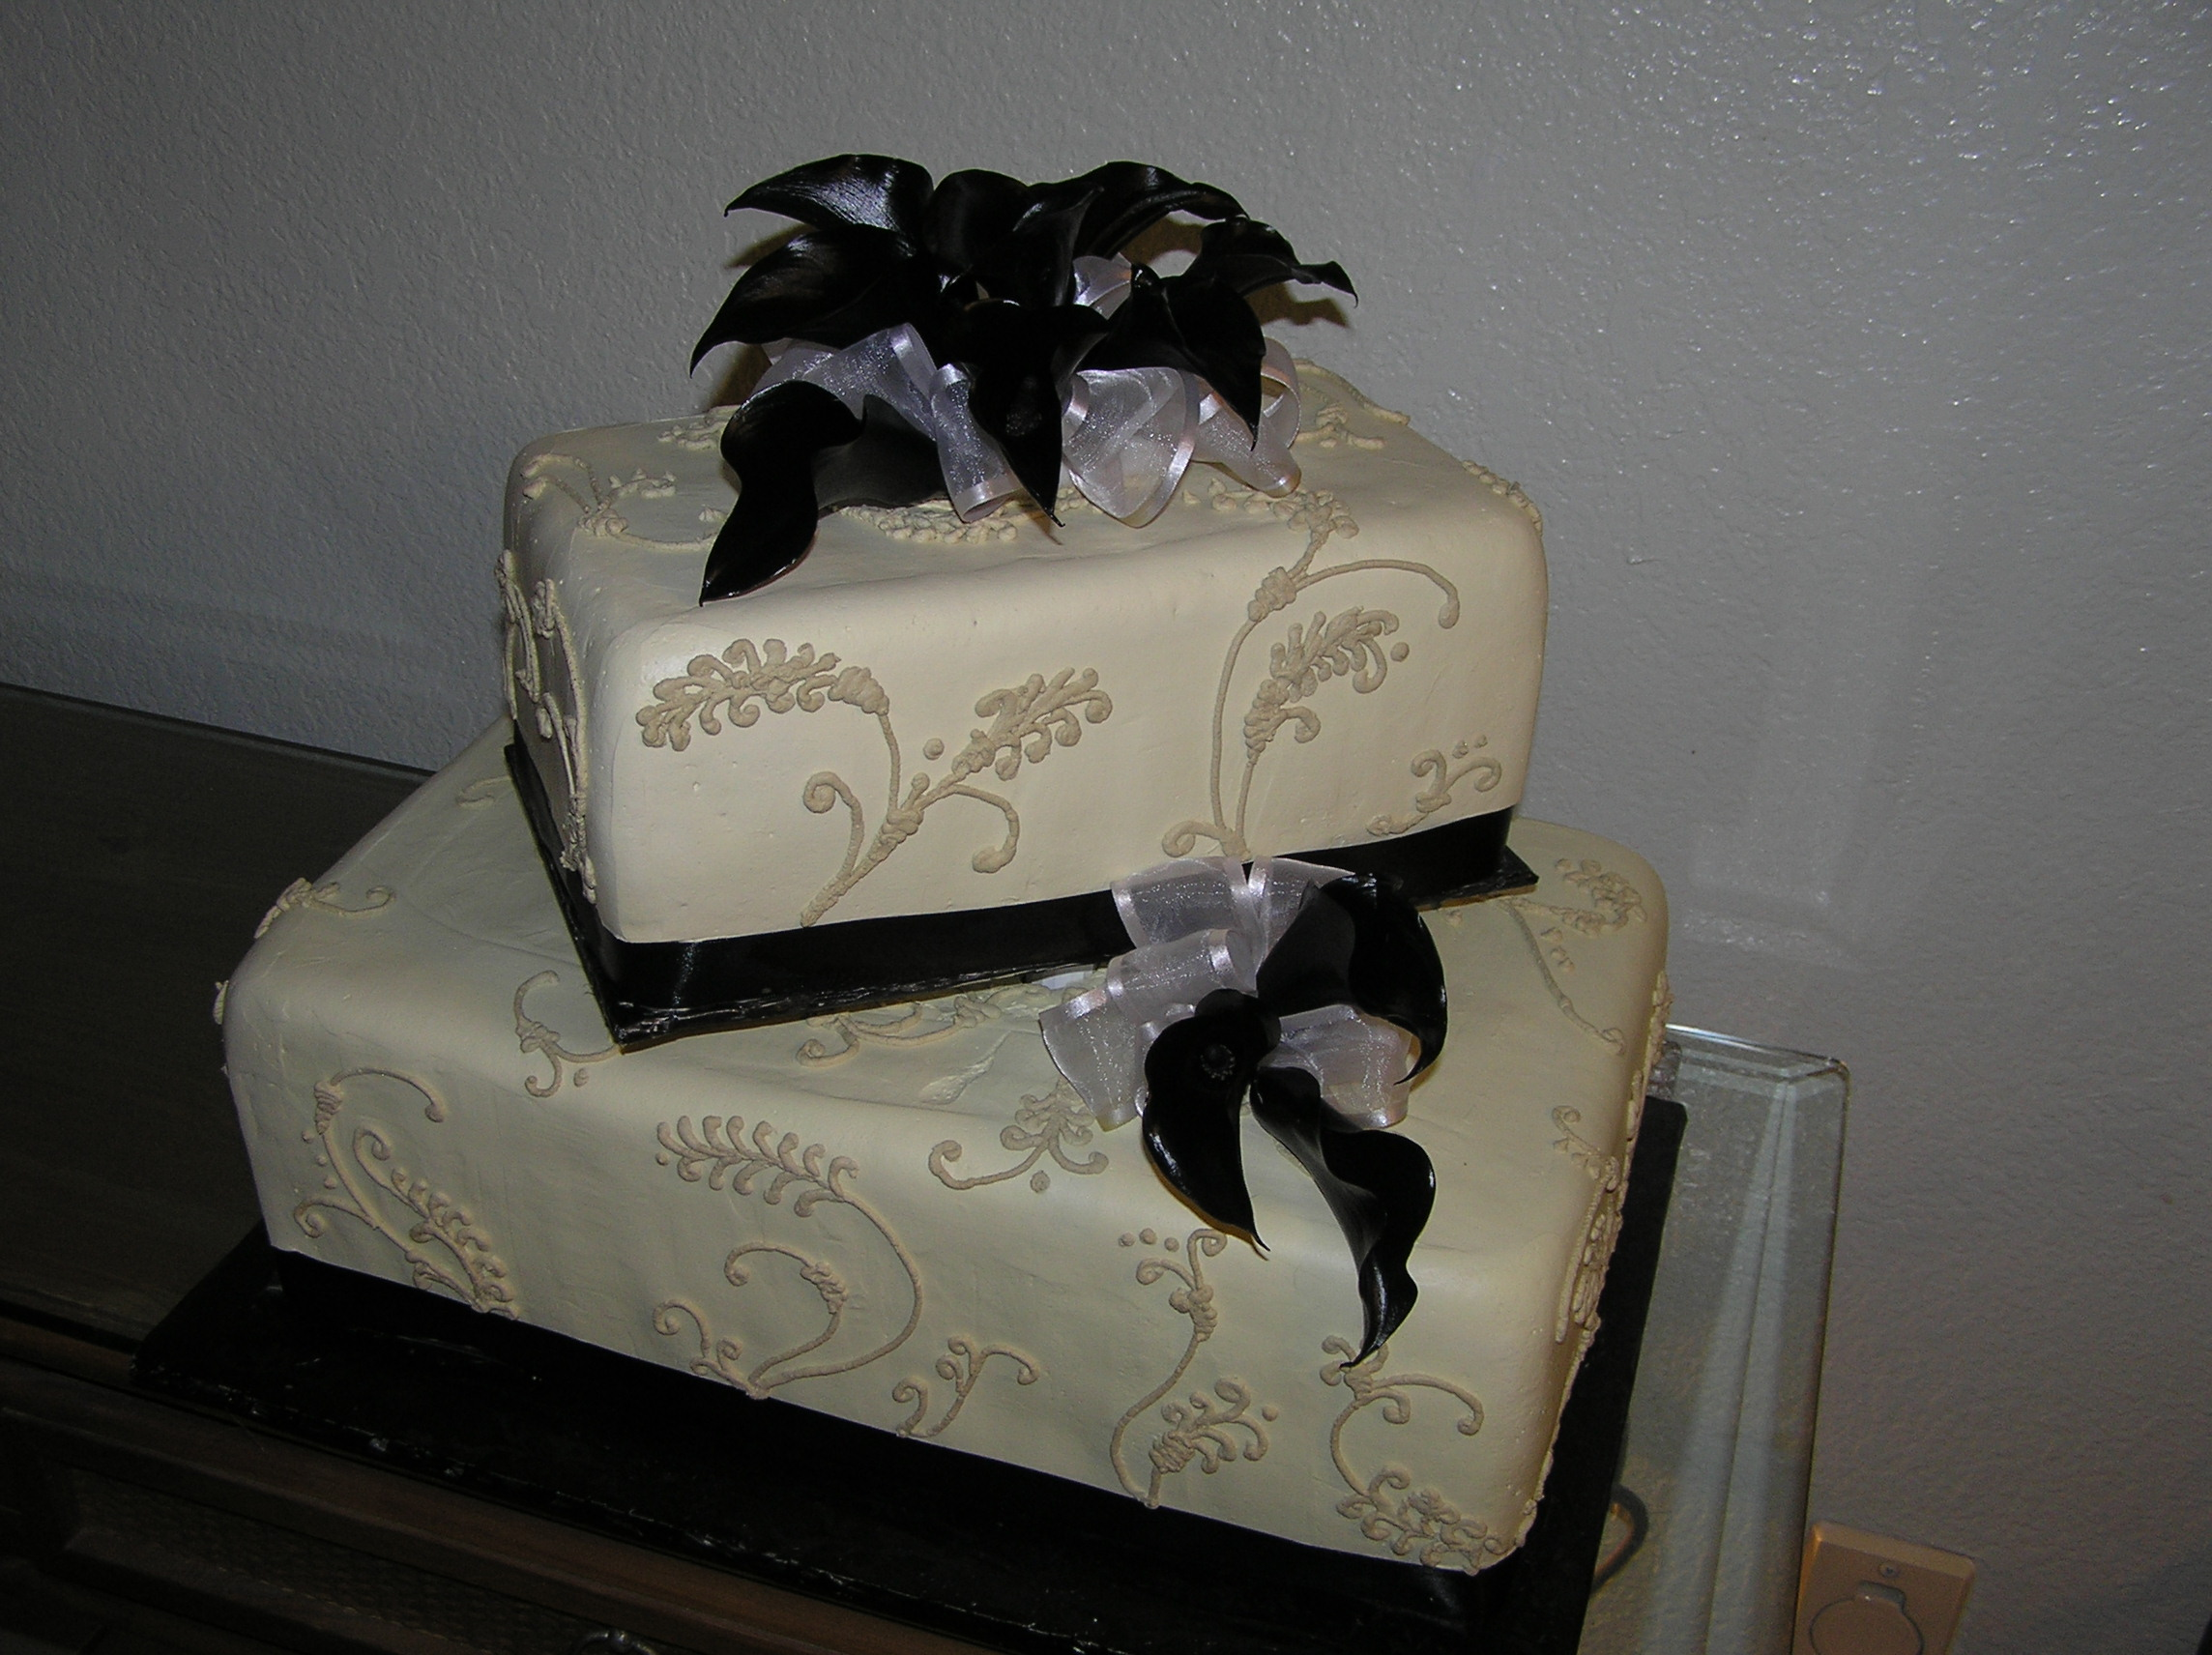 Ivory and Black Cake | Cakes On The Move